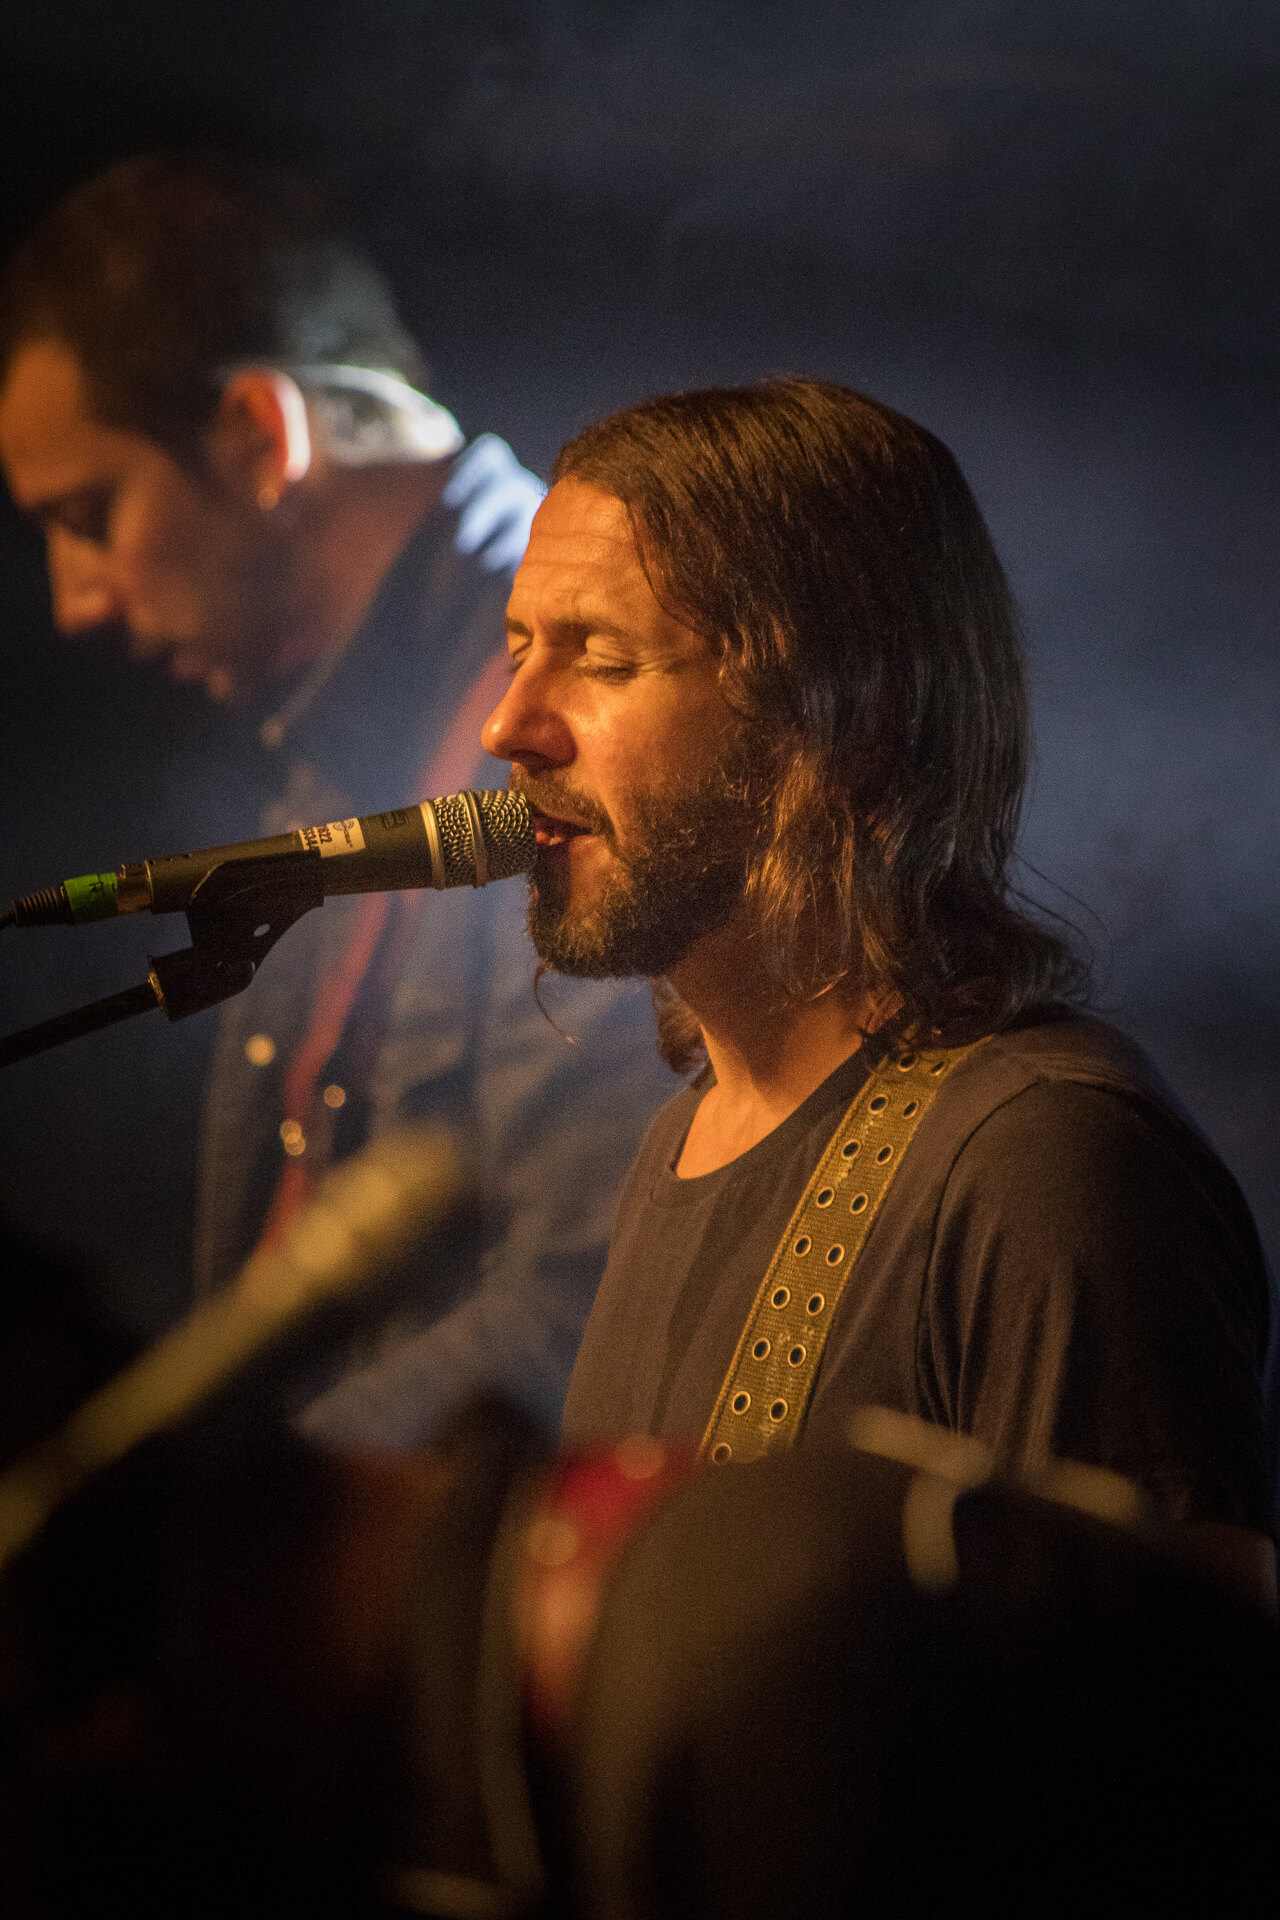 A close up colour photograph of Feeder lead singer Grant Nicholas singing at Lakefest 2017.